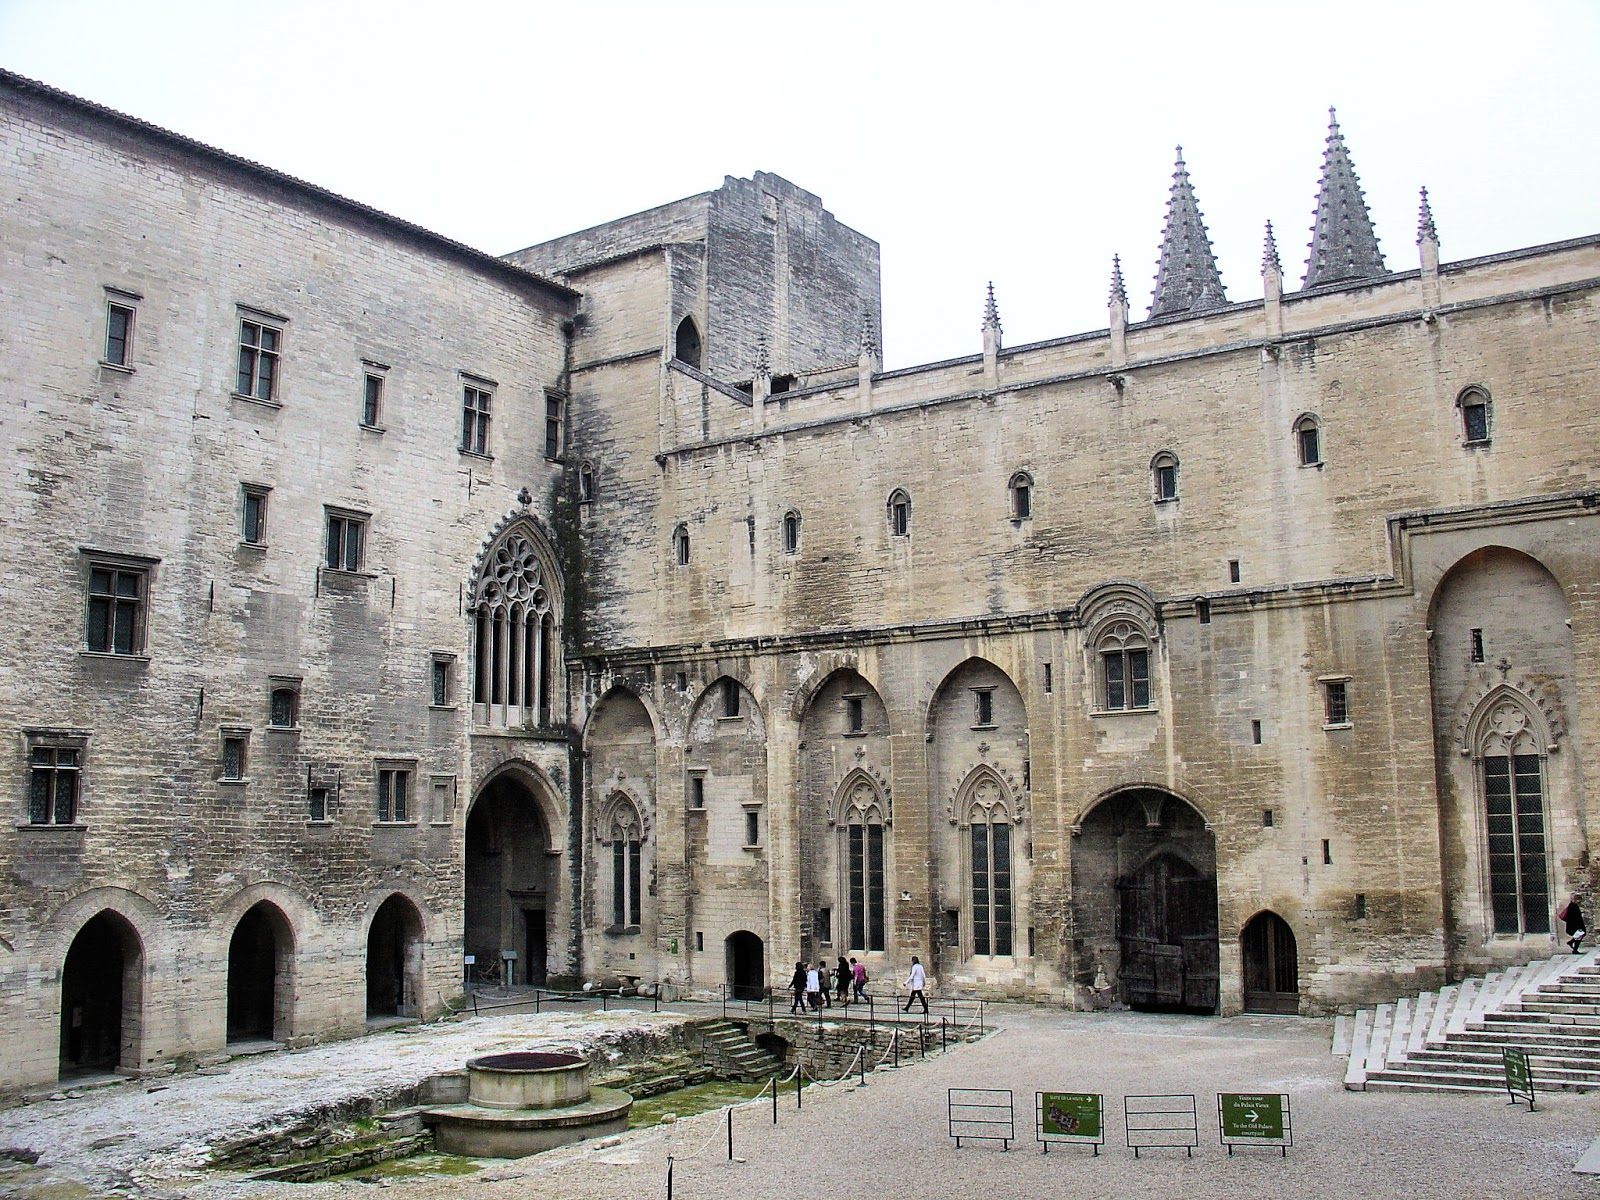 Central Courtyard. The fountain at the left was formerly the site of Pope John XXII's Audience Chamber.